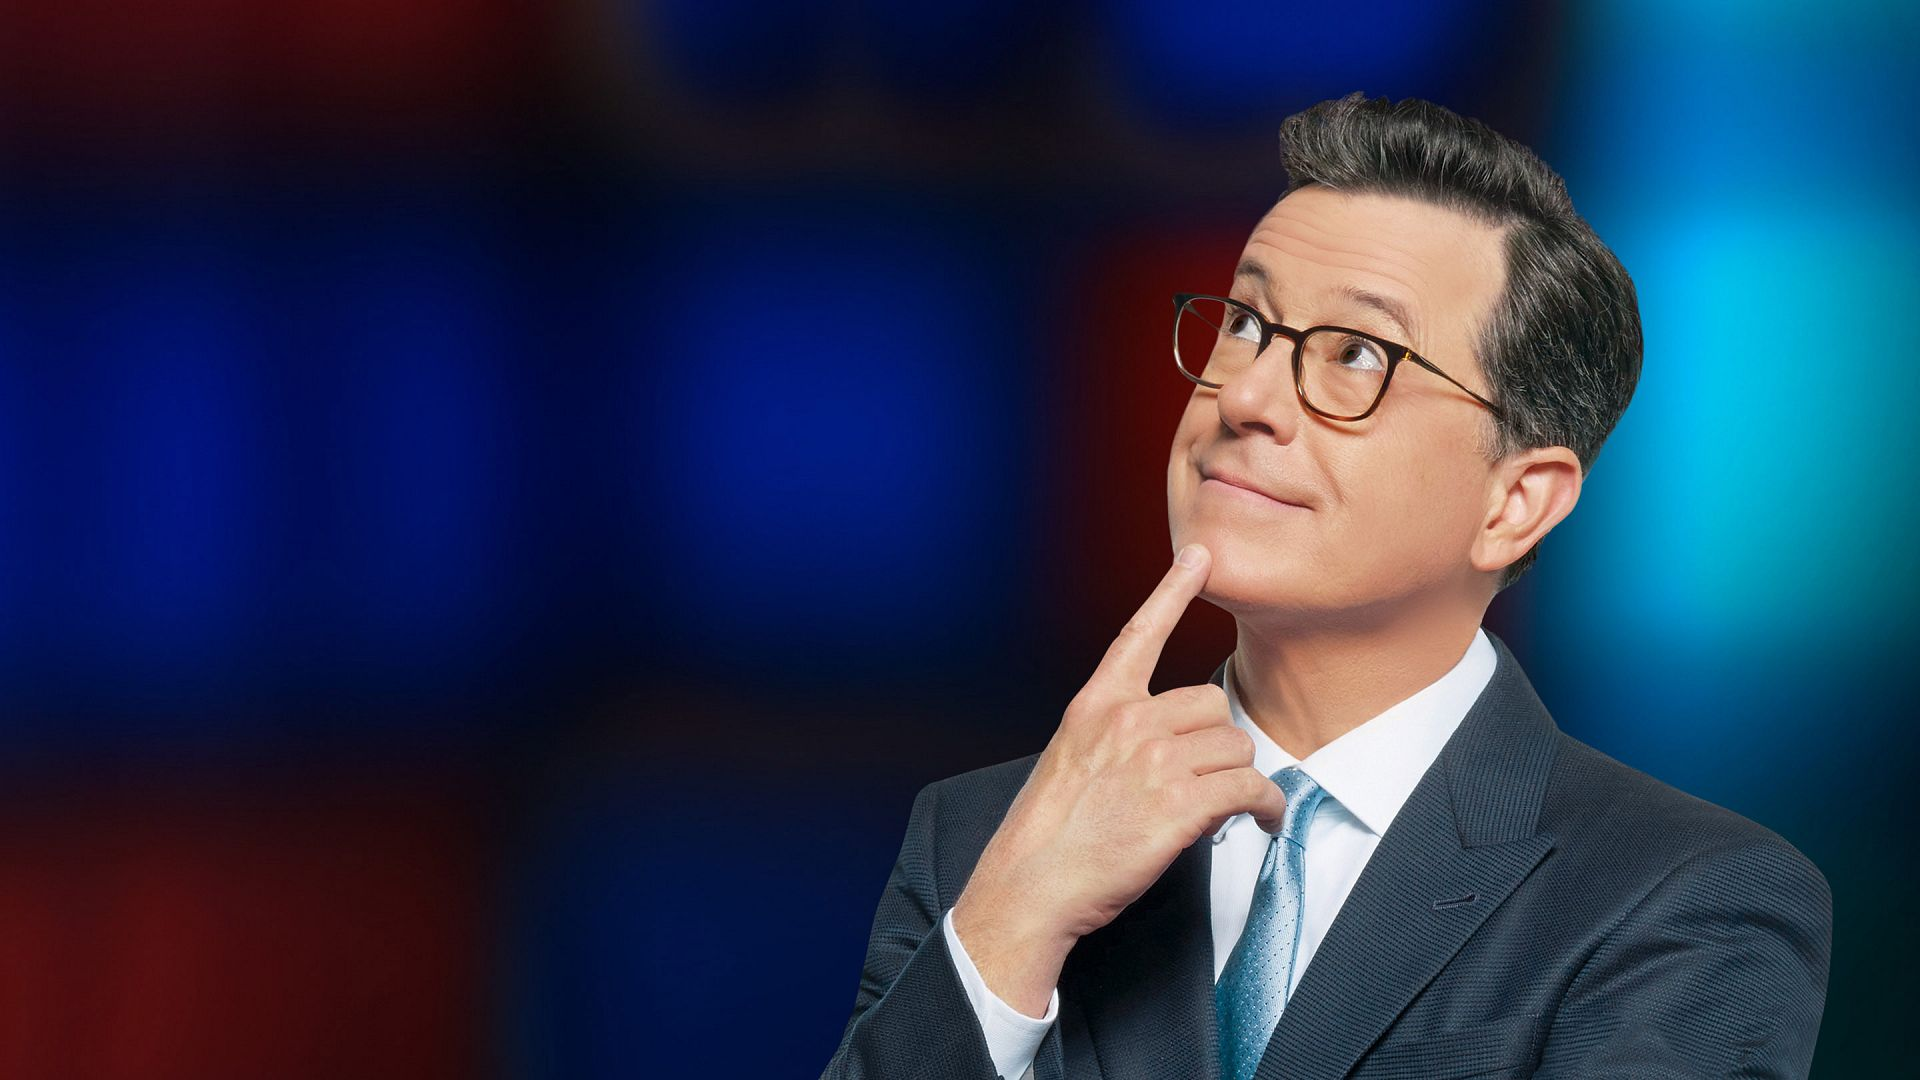 The Late Show with Stephen Colbert   CBS All Access 1920x1080